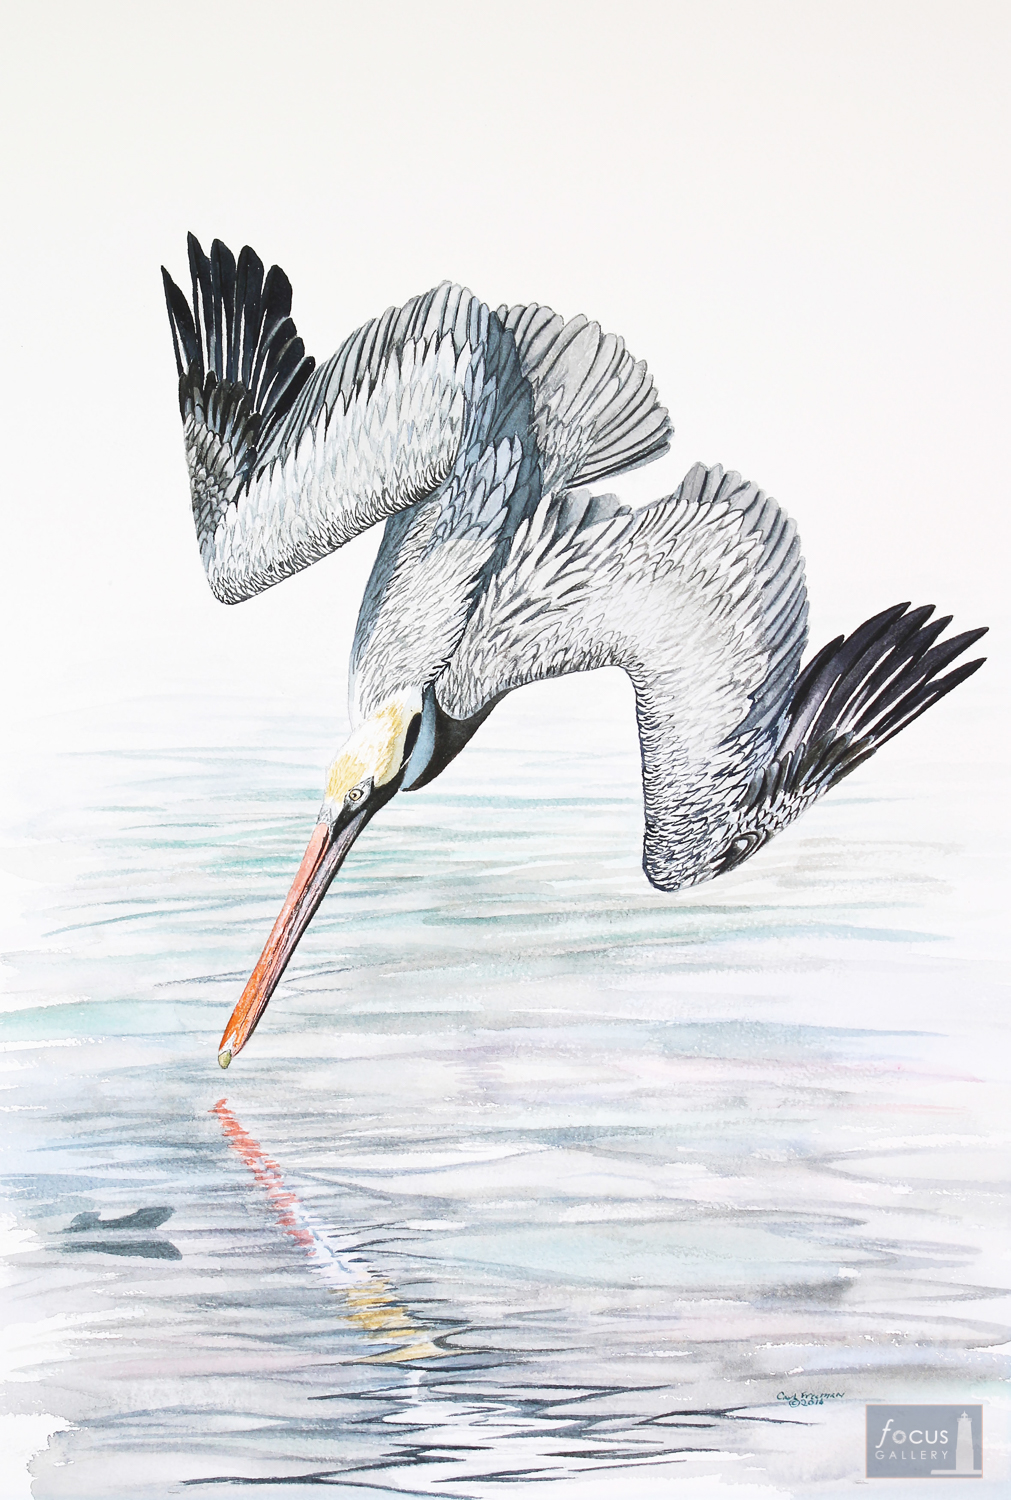 Original watercolor painting of a Brown Pelican bird diving into the water while fishing.